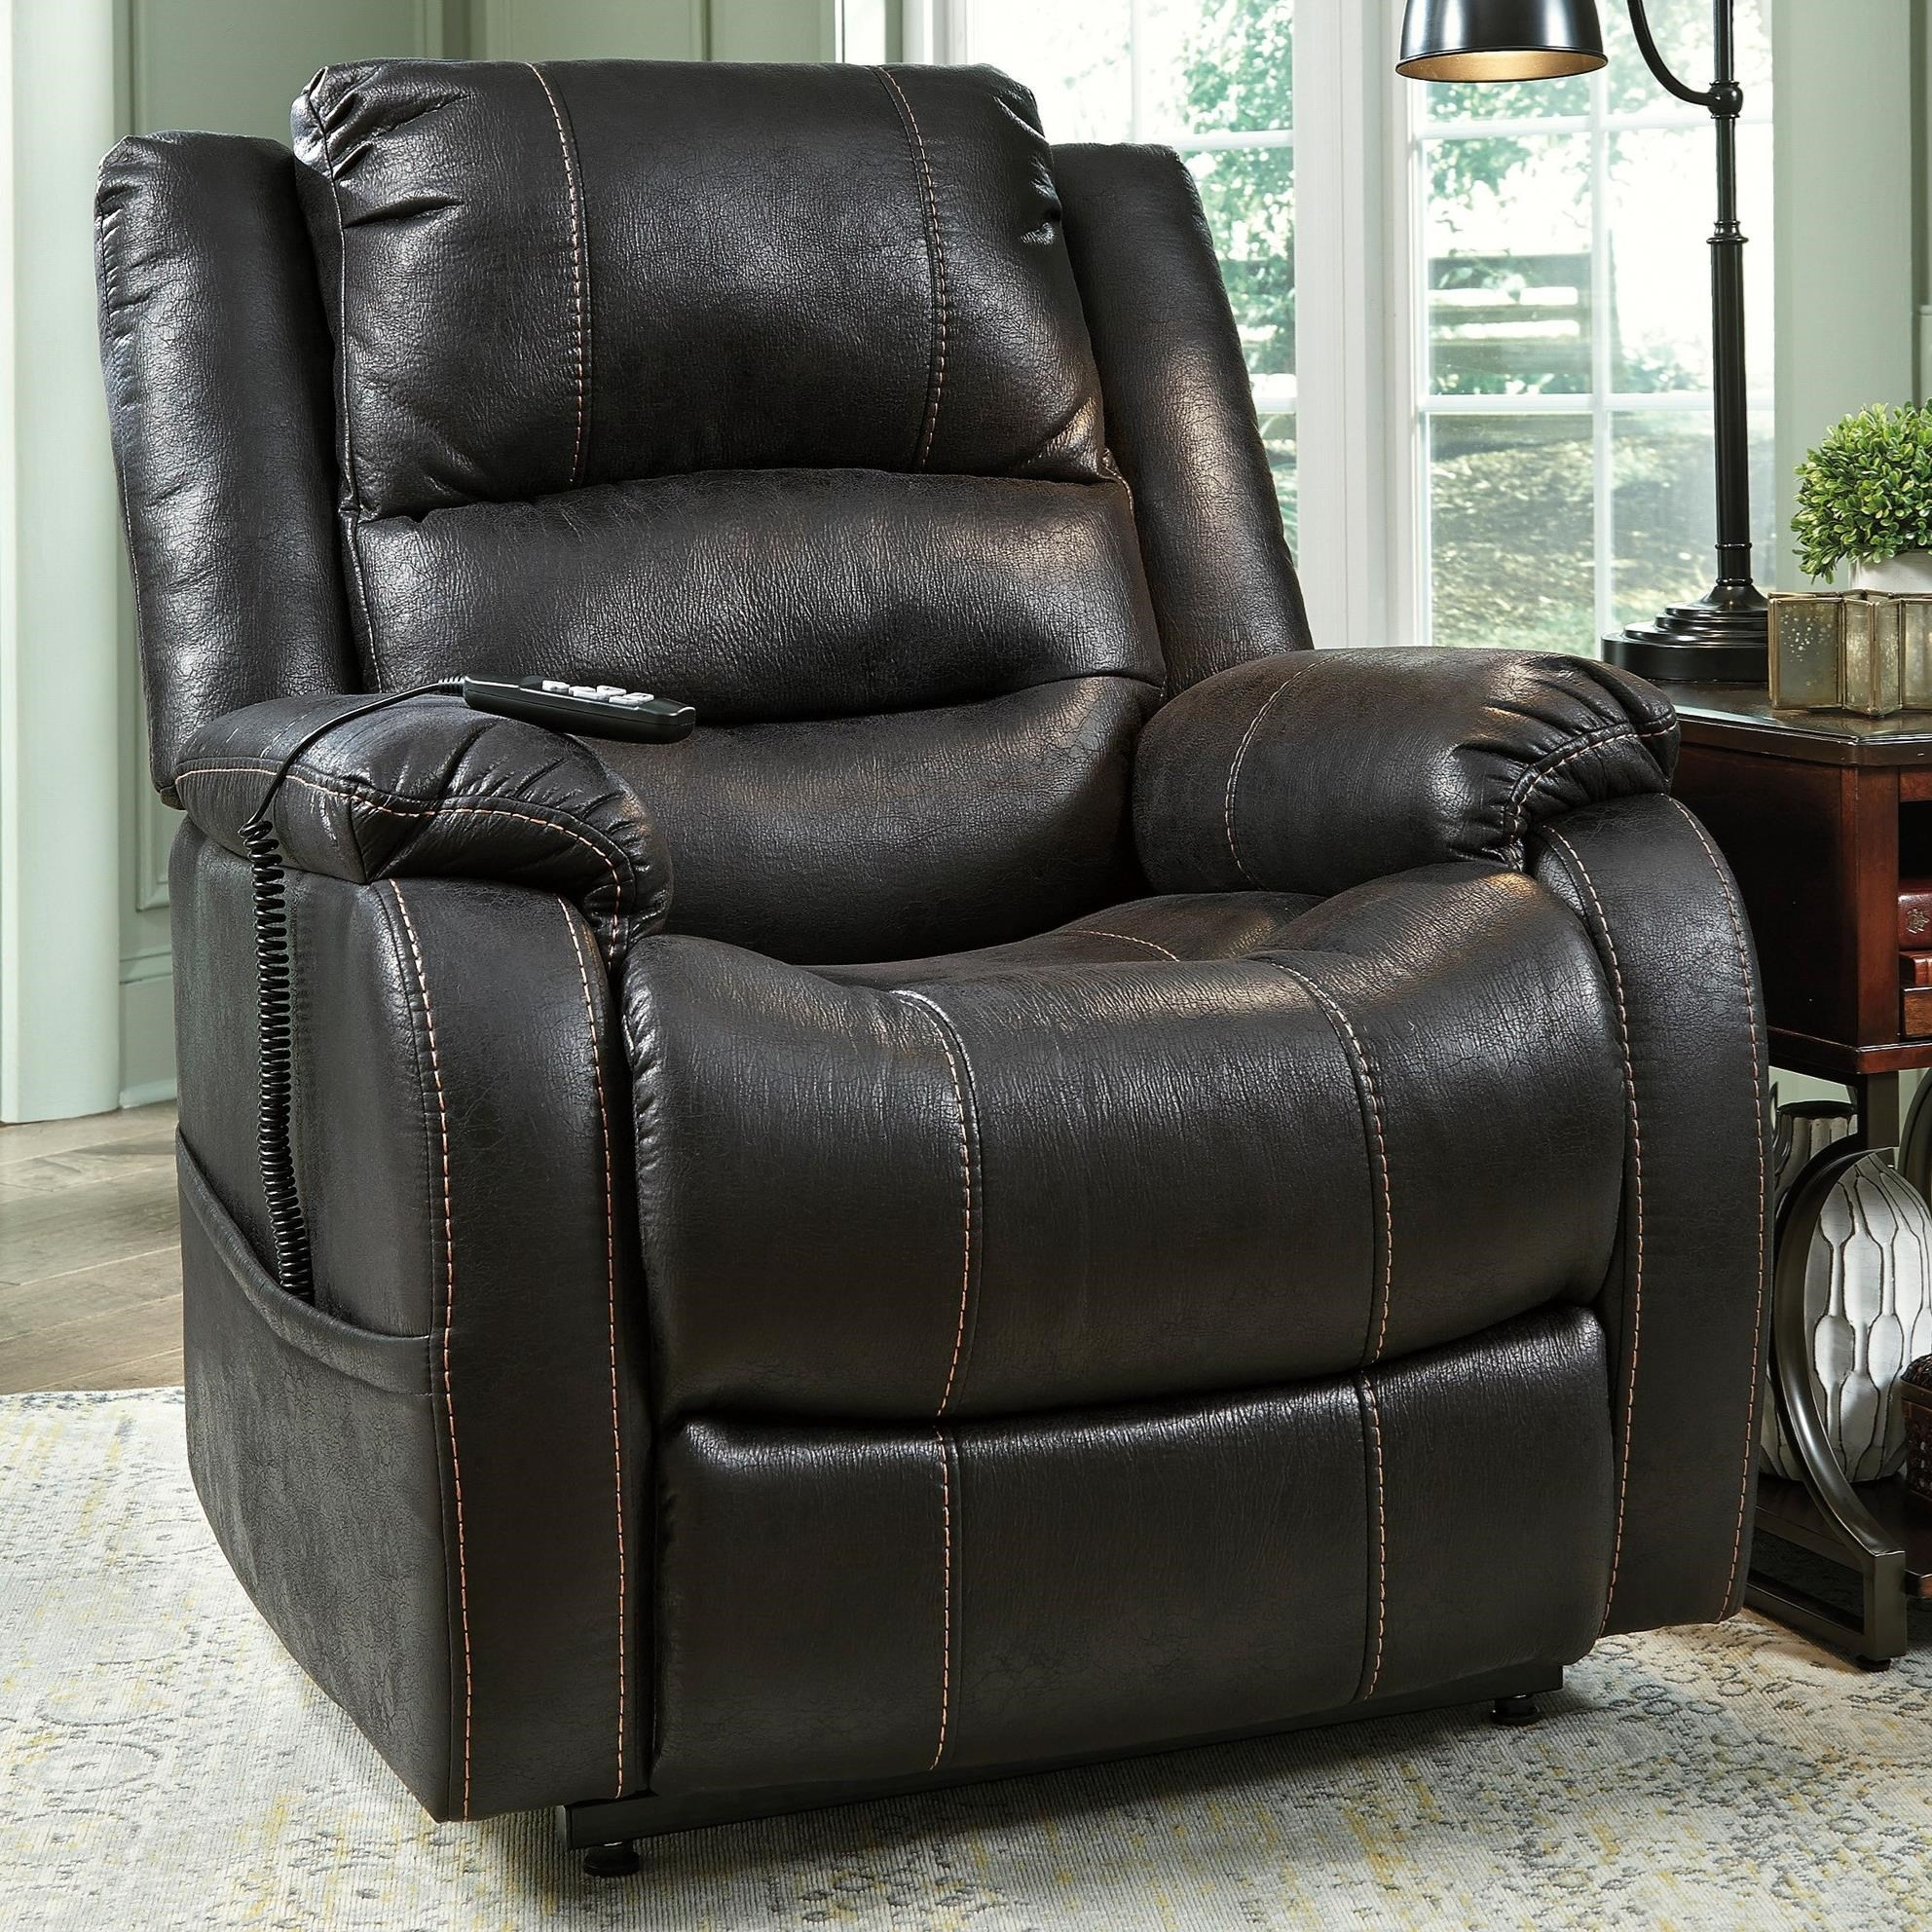 Signature Design by Ashley Yandel Power Lift Recliner - Item Number 1090112 & Signature Design by Ashley Yandel Faux Leather Power Lift Recliner ...